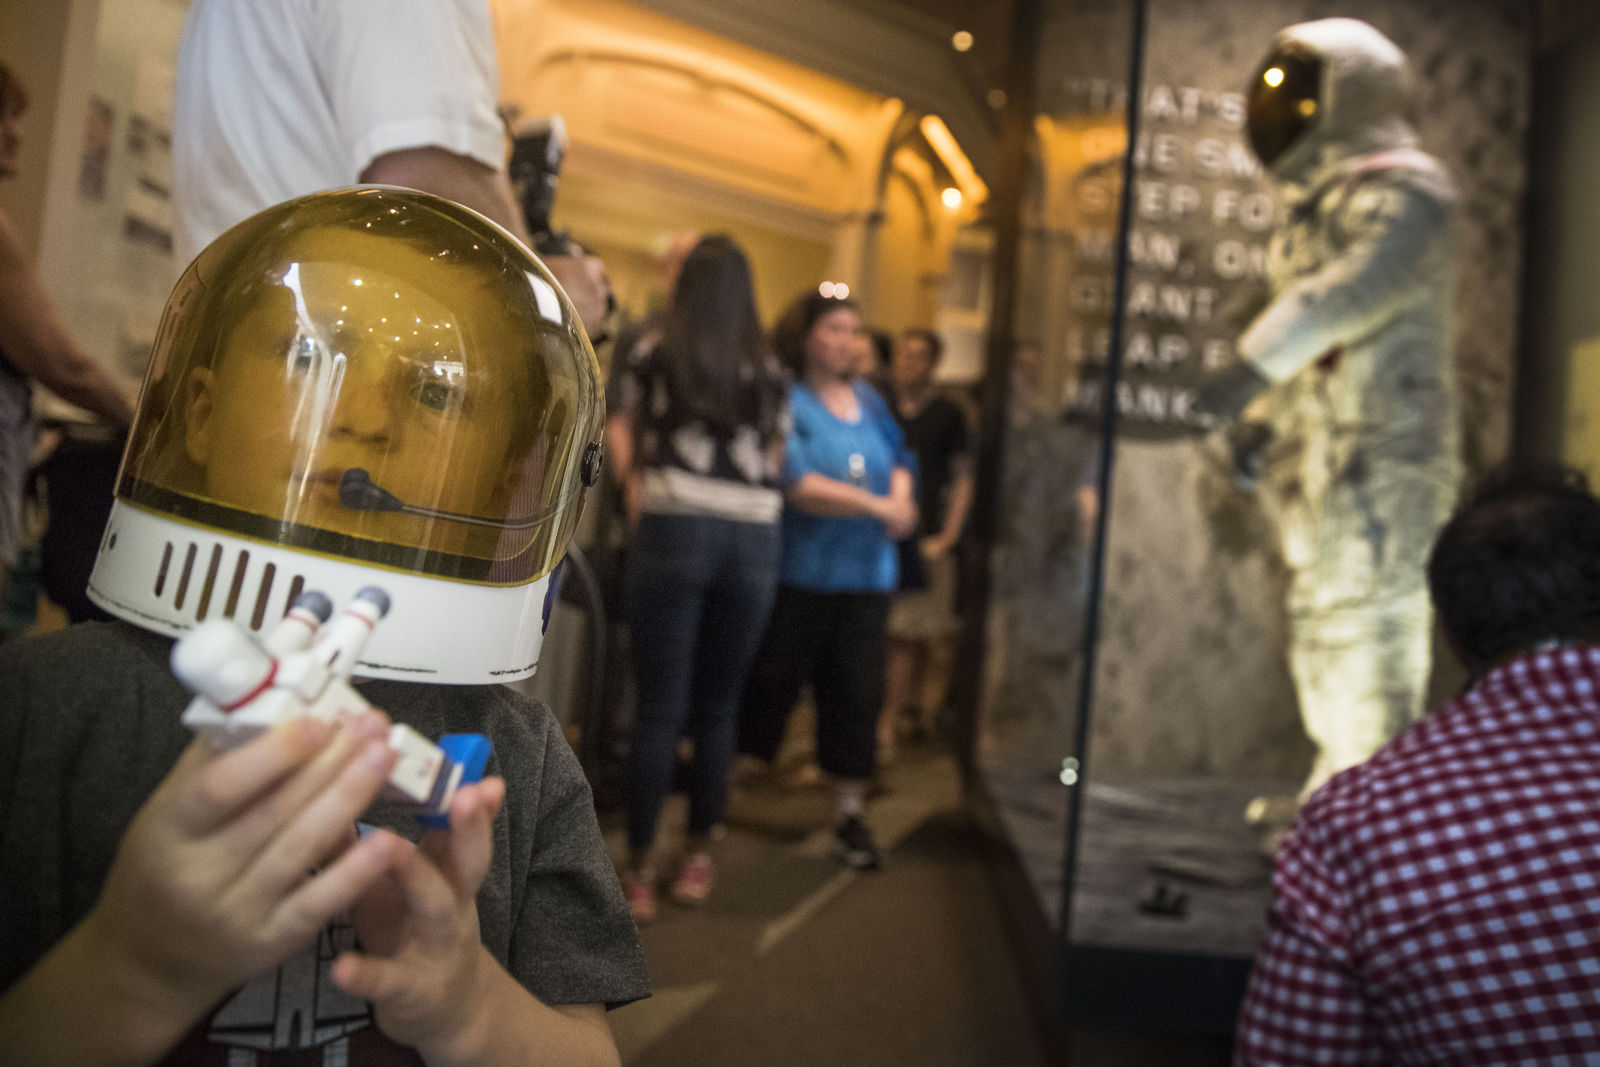 Jack Heely, 5, of Alexandria, Va., wears a toy space helmet as he arrives as one of the first visitors to view Neil Armstrong's Apollo 11 spacesuit, background, after it is unveiled at the Smithsonian's National Air and Space Museum on the National Mall in Washington, Tuesday, July 16, 2019. (AP Photo/Andrew Harnik)